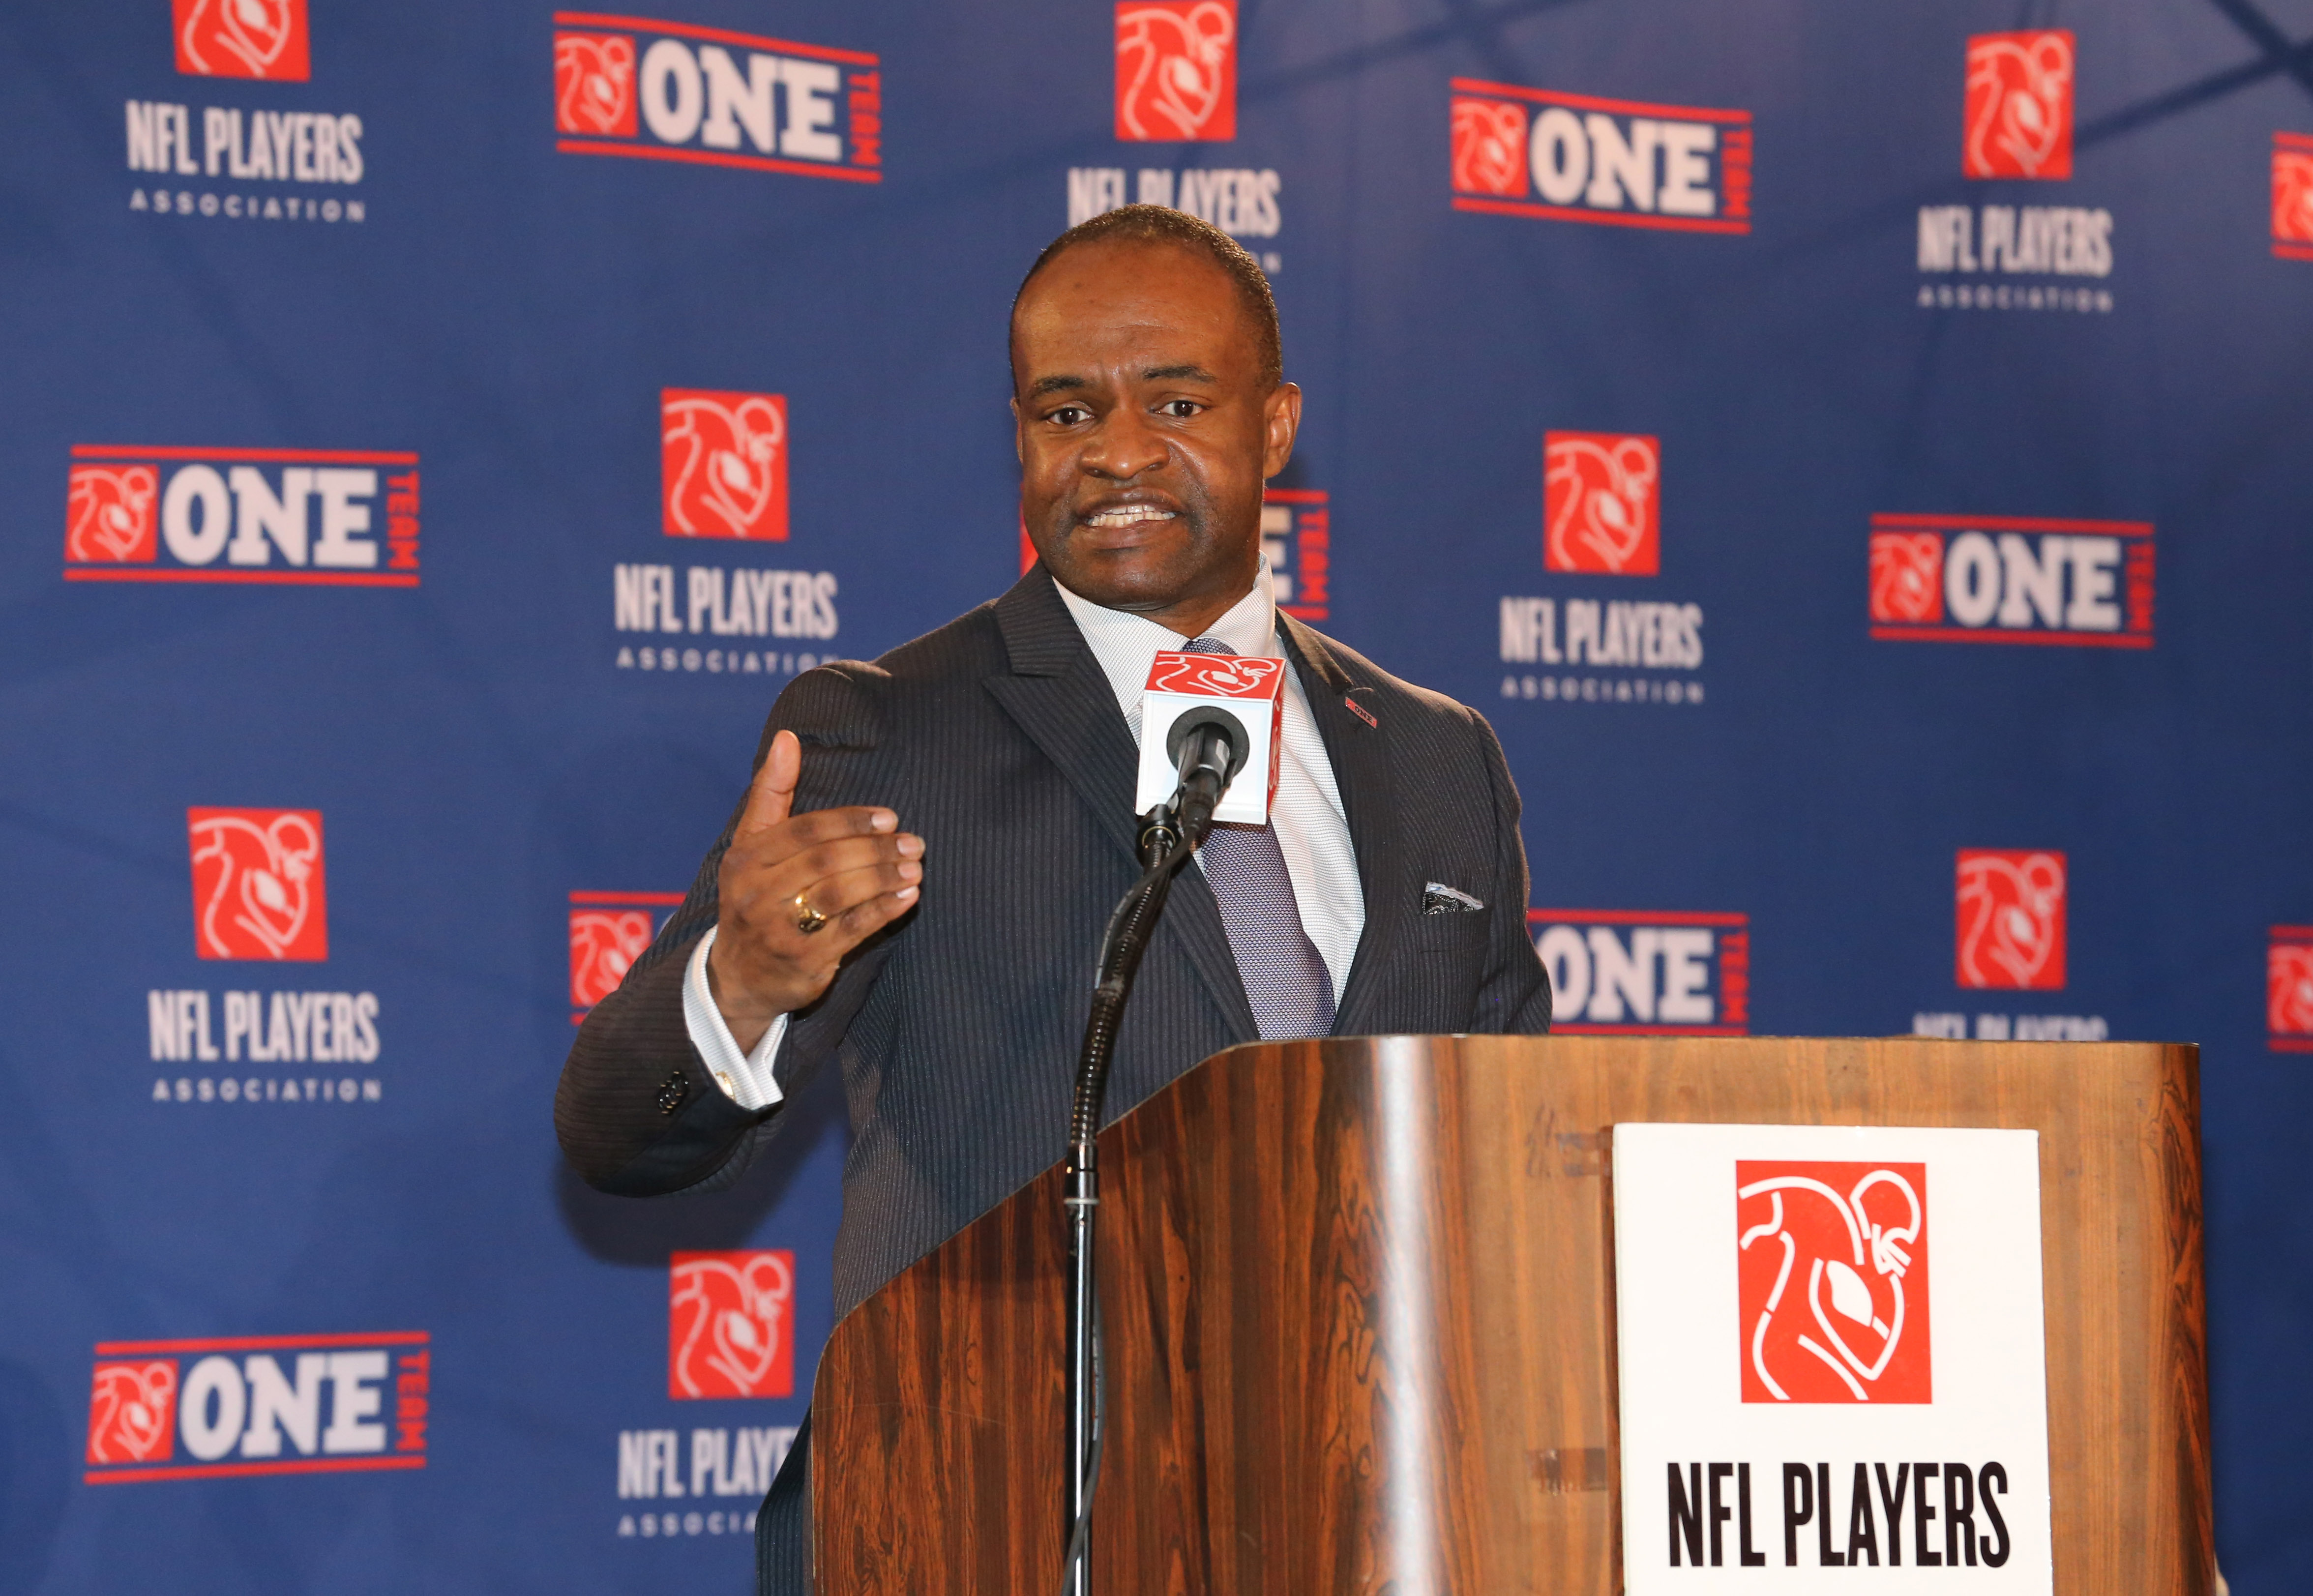 NFLPA executive director DeMaurice Smith speaks during the NFL players association news conference during Super Bowl week. (USA TODAY Sports)